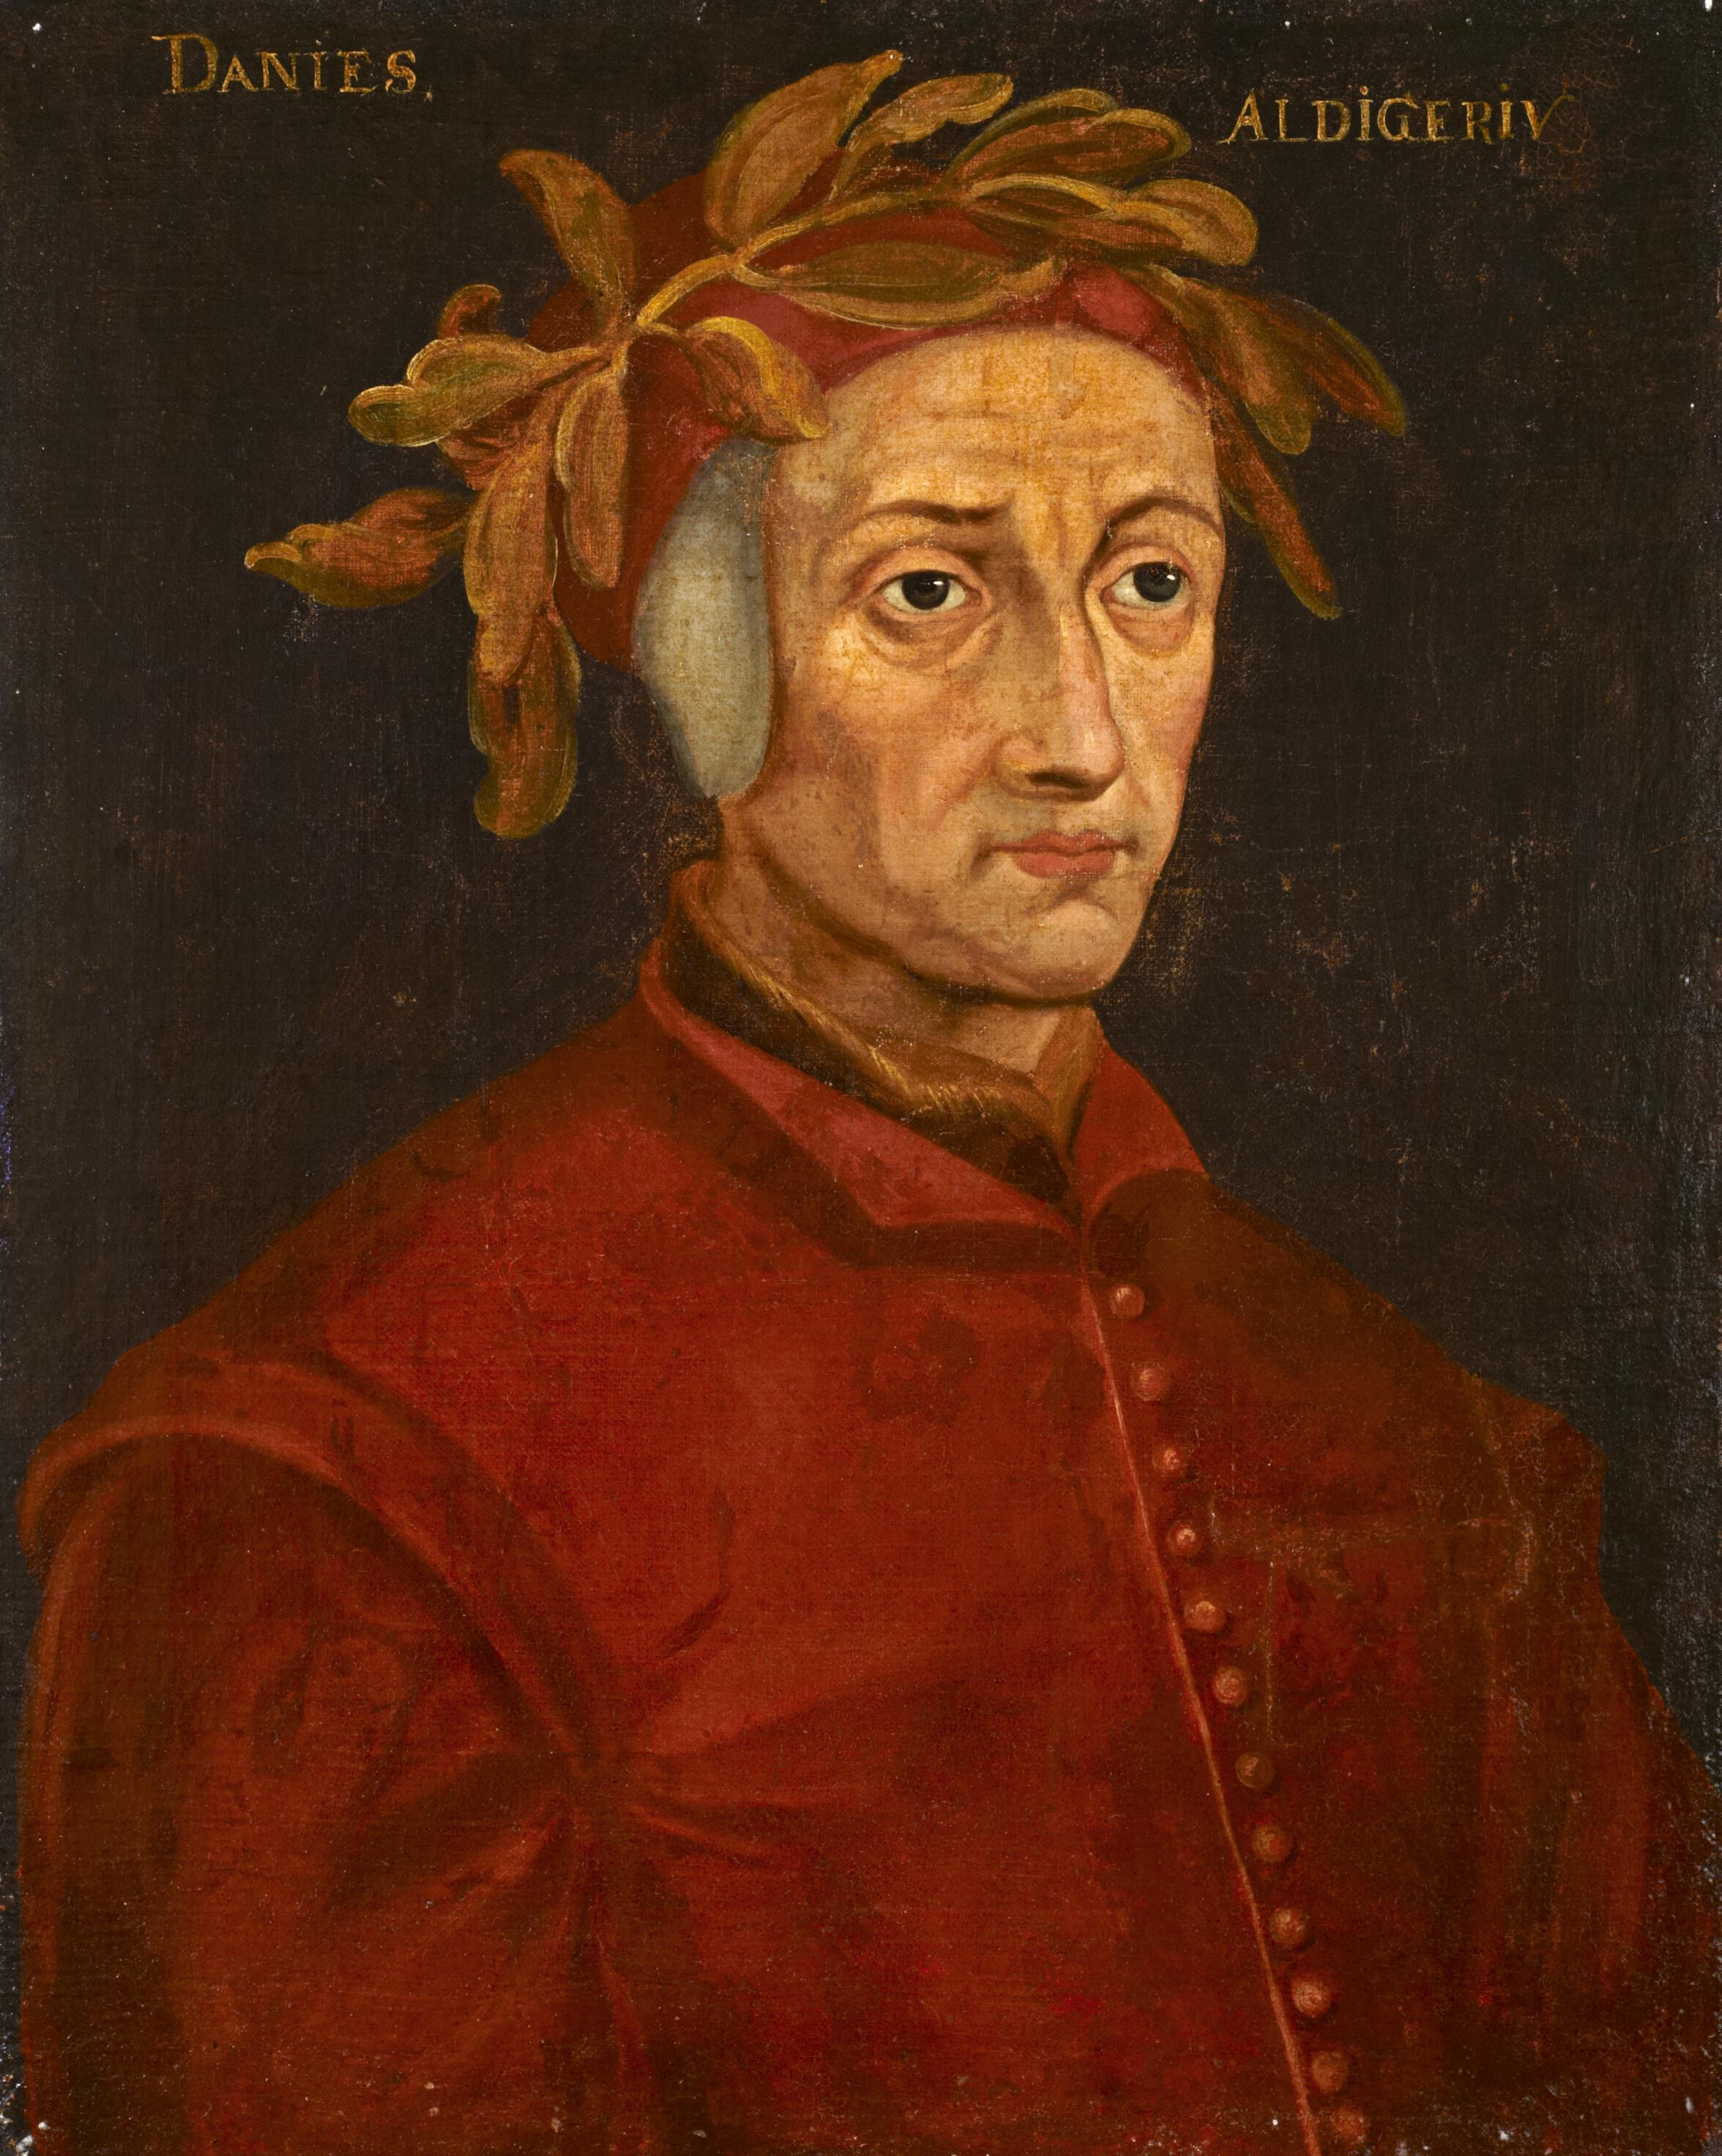 a biography of dante alighieri a writer Dante alighieri was an italian prose writer, poet, moral philosopher, literary theorist, and political thinker he is considered to be one of the best poets that the western civilization has ever produced.